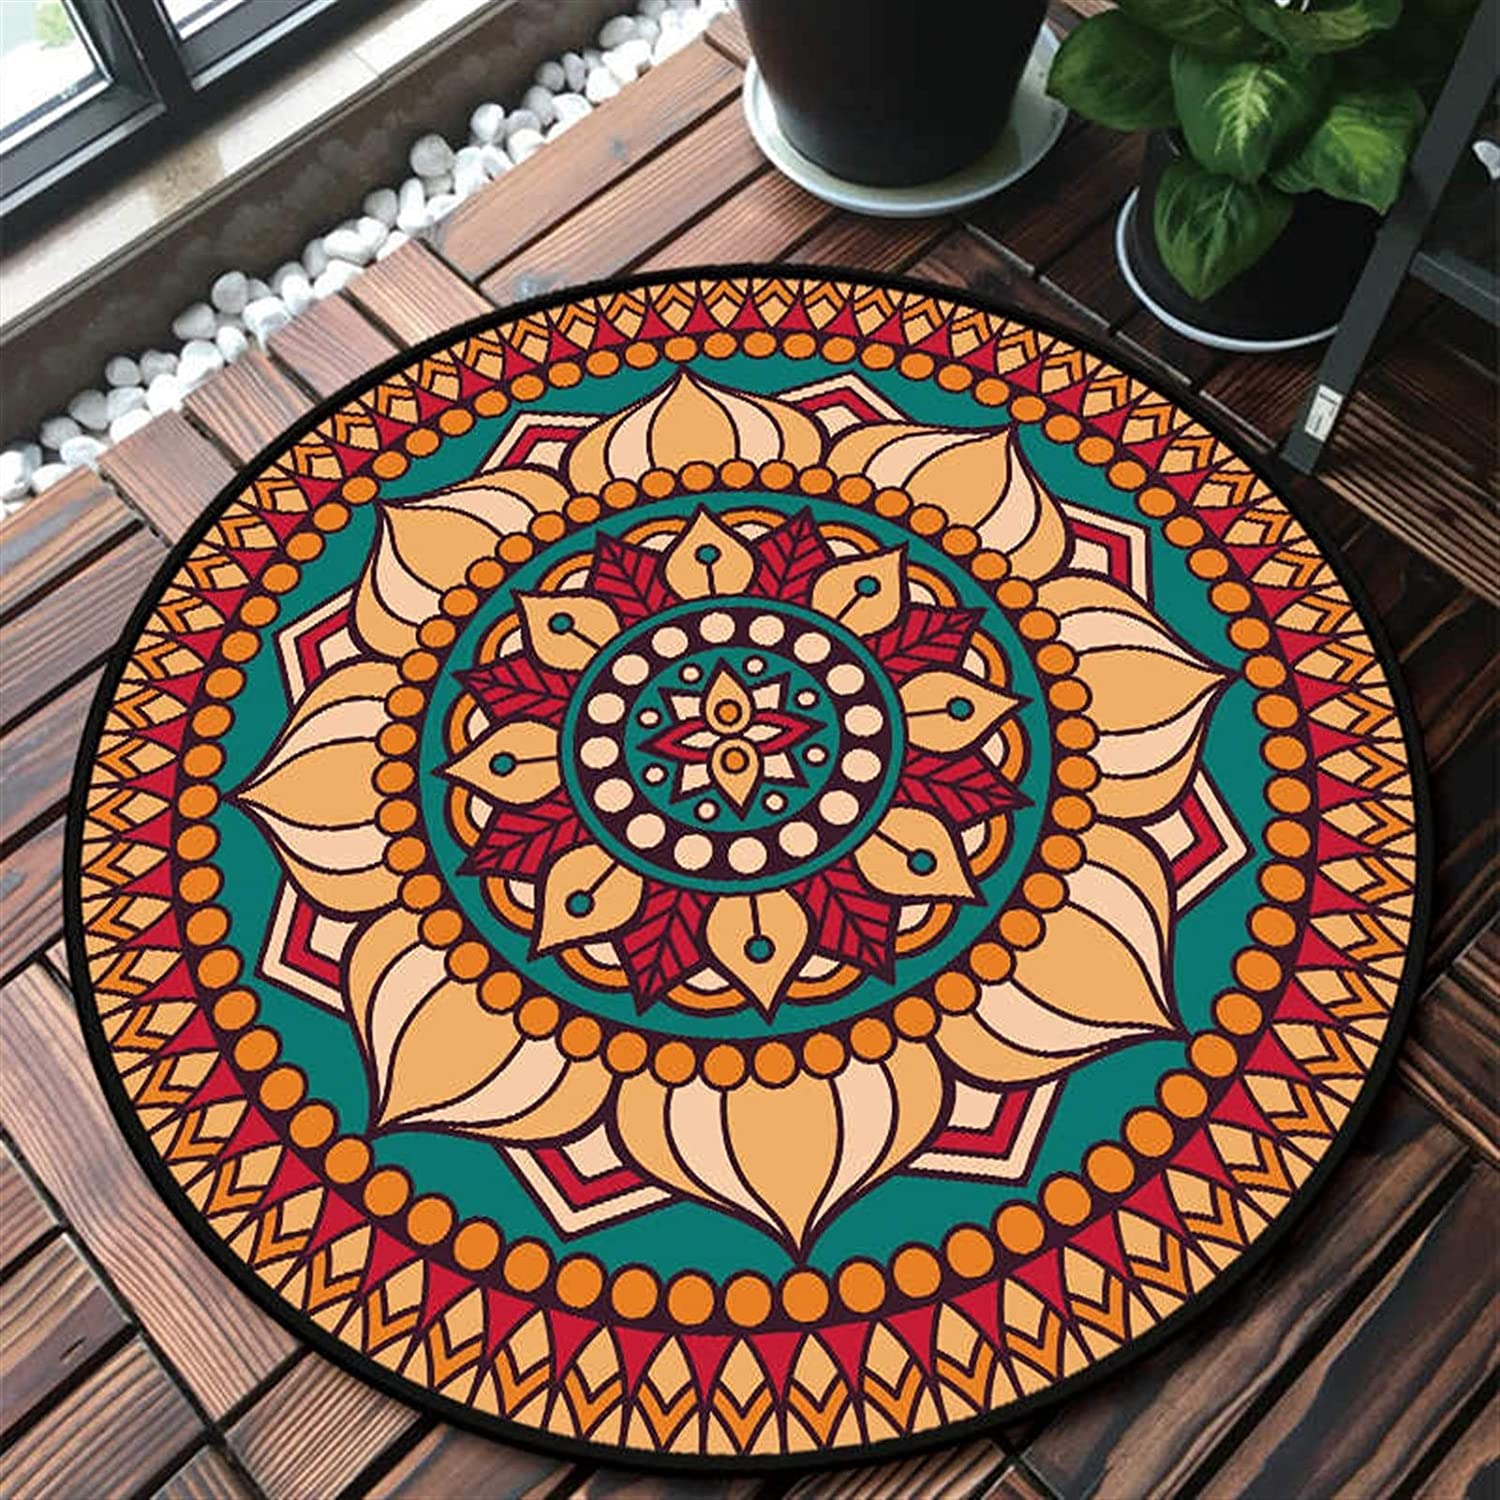 SHENYF-Hua National Spring new work one after another Style Round Mandala Carpet Cheap bargain Room Decor Rugs P